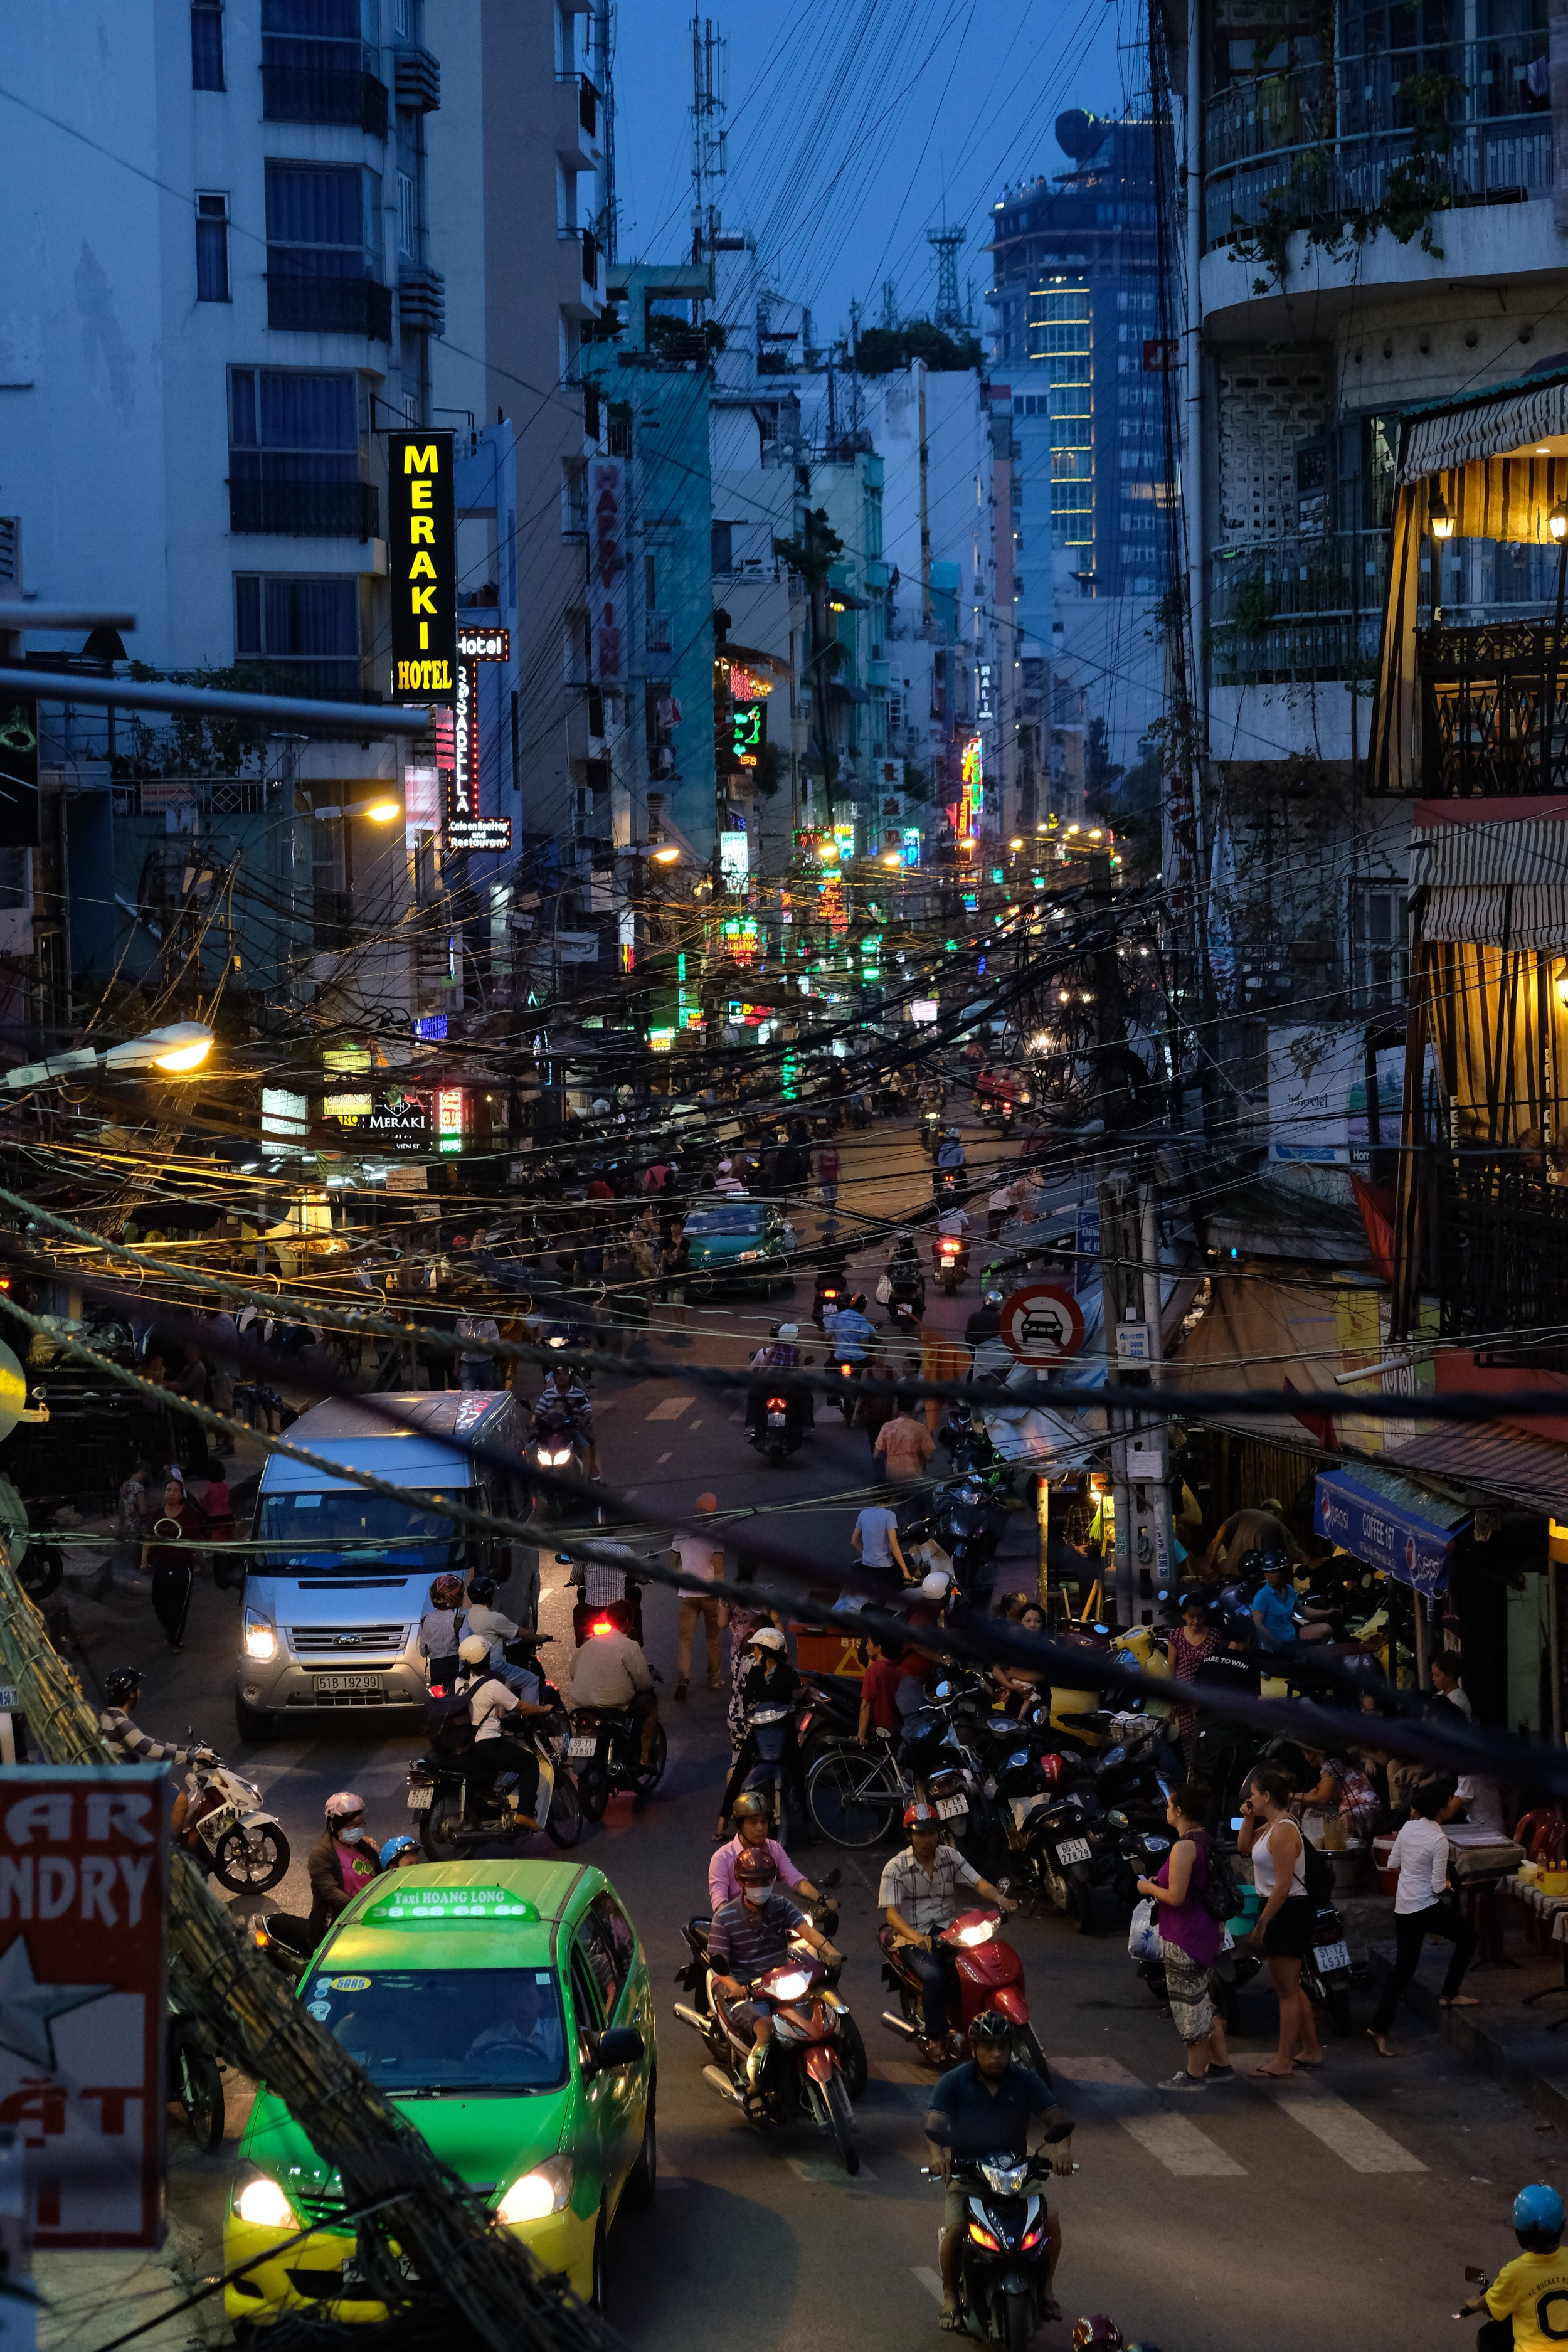 Bui Vien street at night - a bit after the worst rush hour.